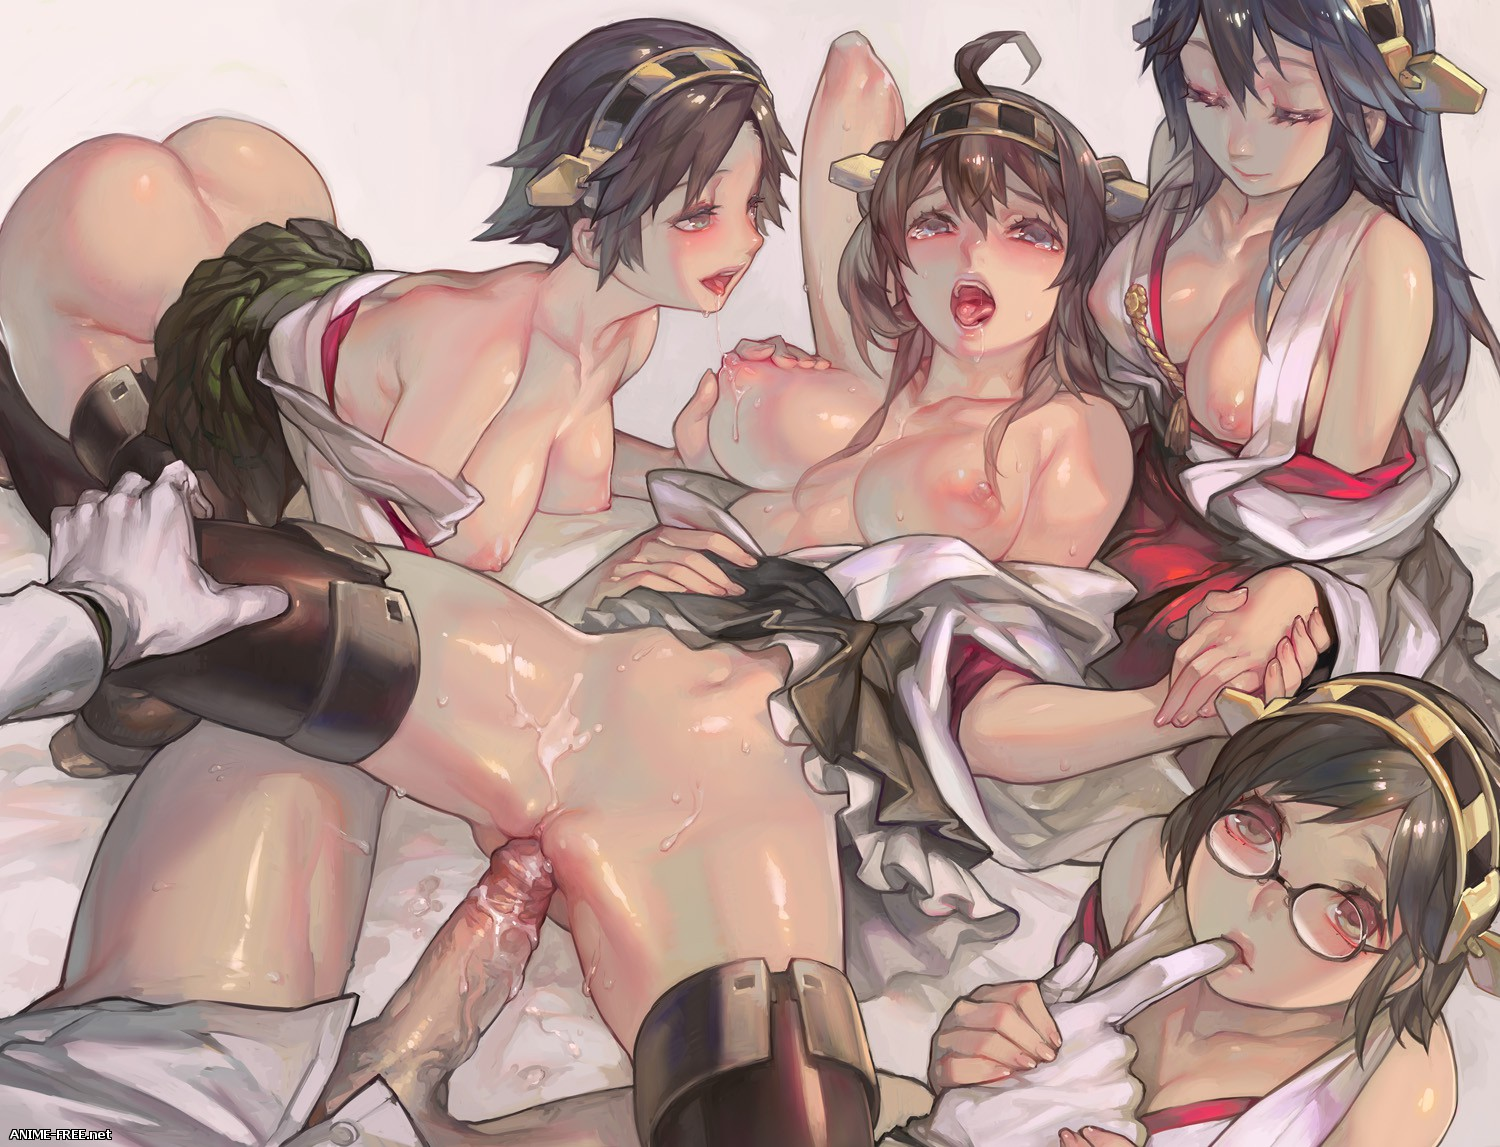 Aoin / Aoinhatsu - Artwork collection [Cen] [JPG] Hentai ART